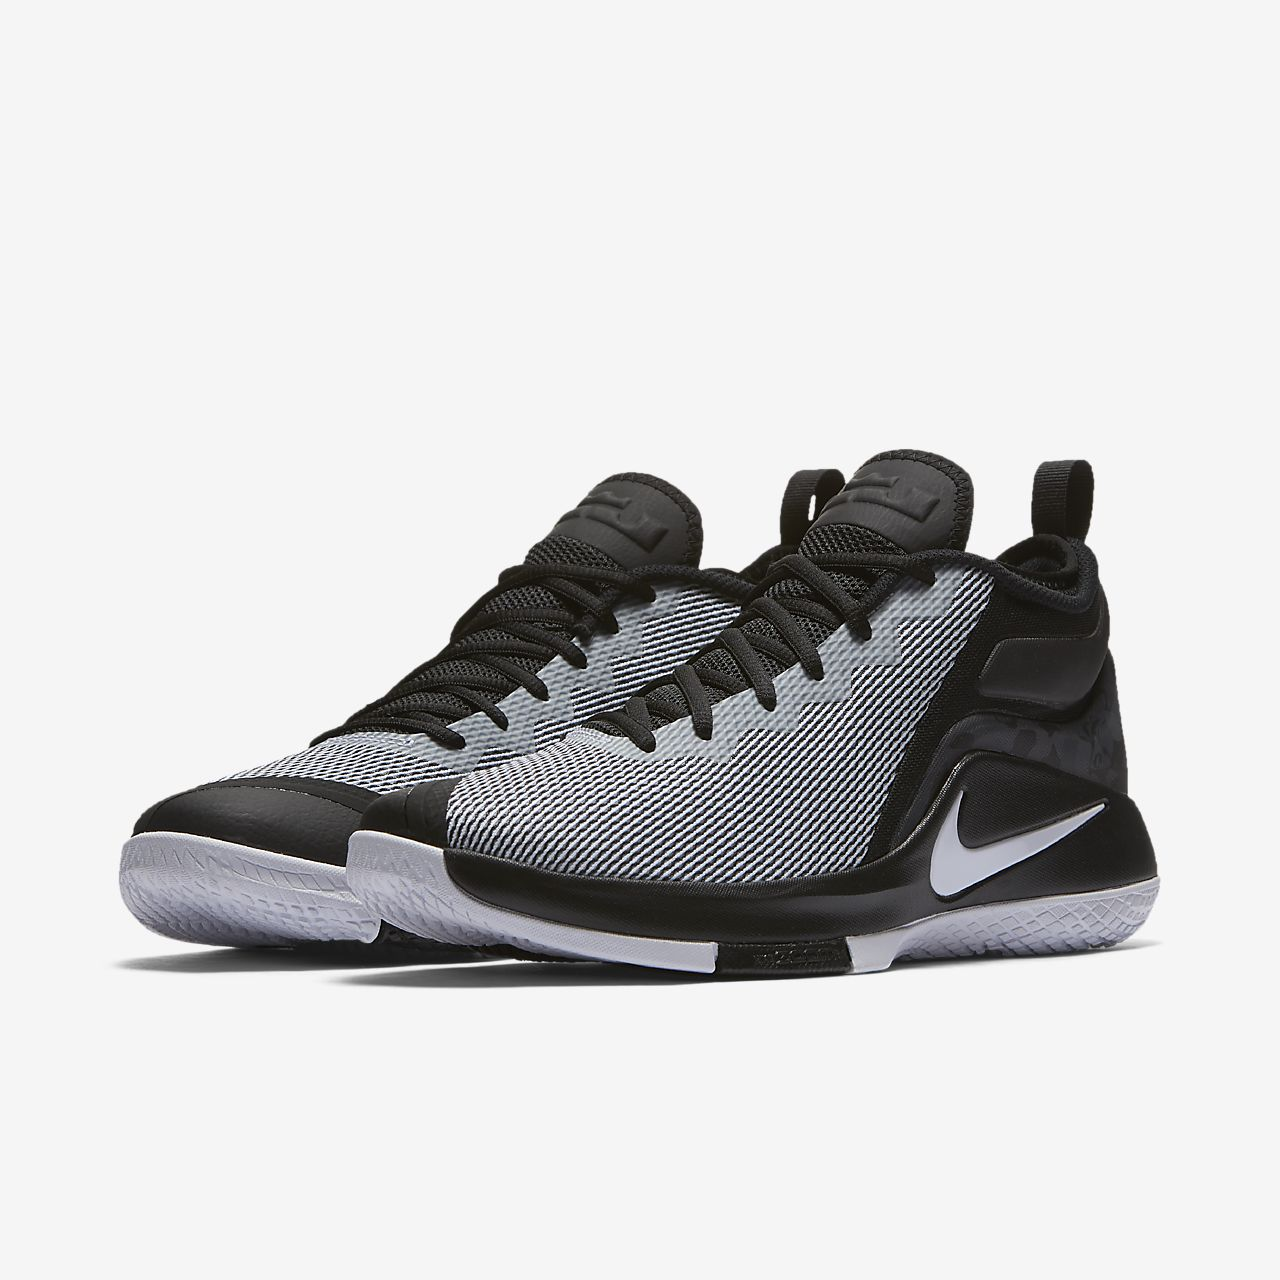 buy online b1ce1 6529f ... cheap another chance 6d61d e0d3e nike lebron witness ii basketball  bootshoe nk 942518 006 4ad6a b1b90